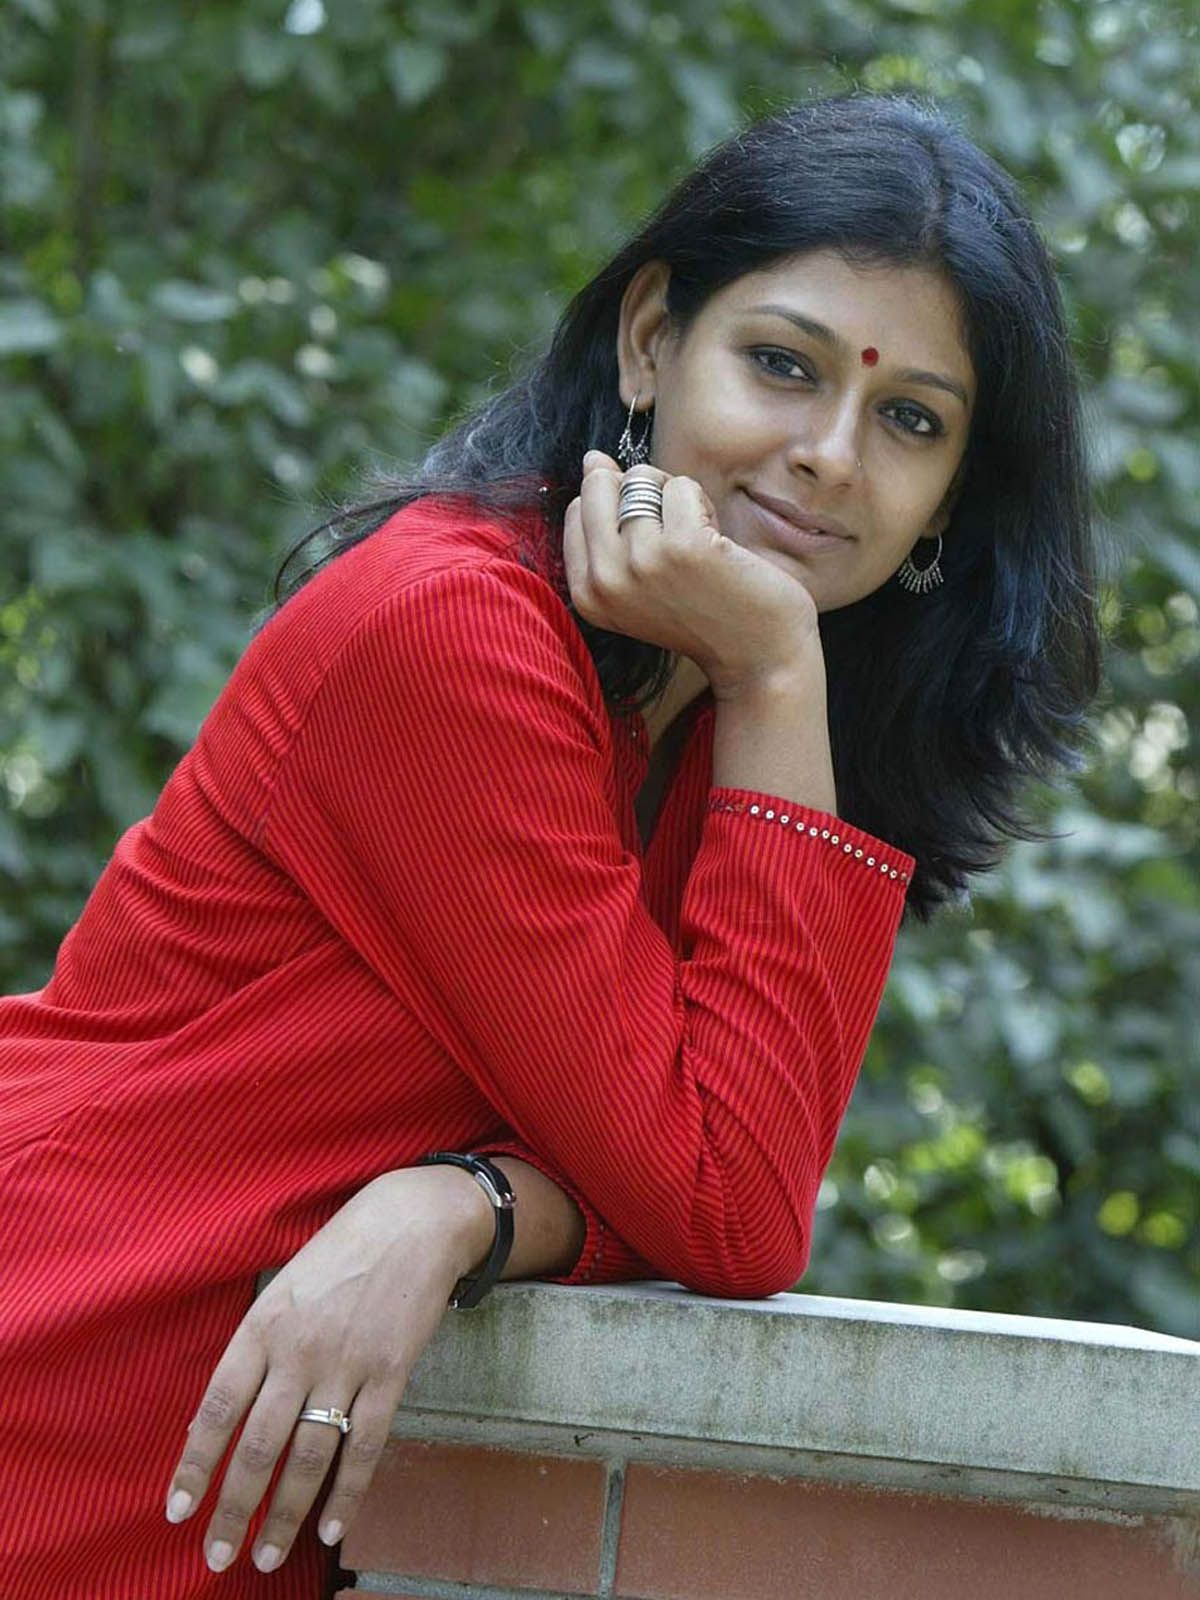 WALLPAPERS: Nandita Das Wallpapers   Be a Woman of Substance ...